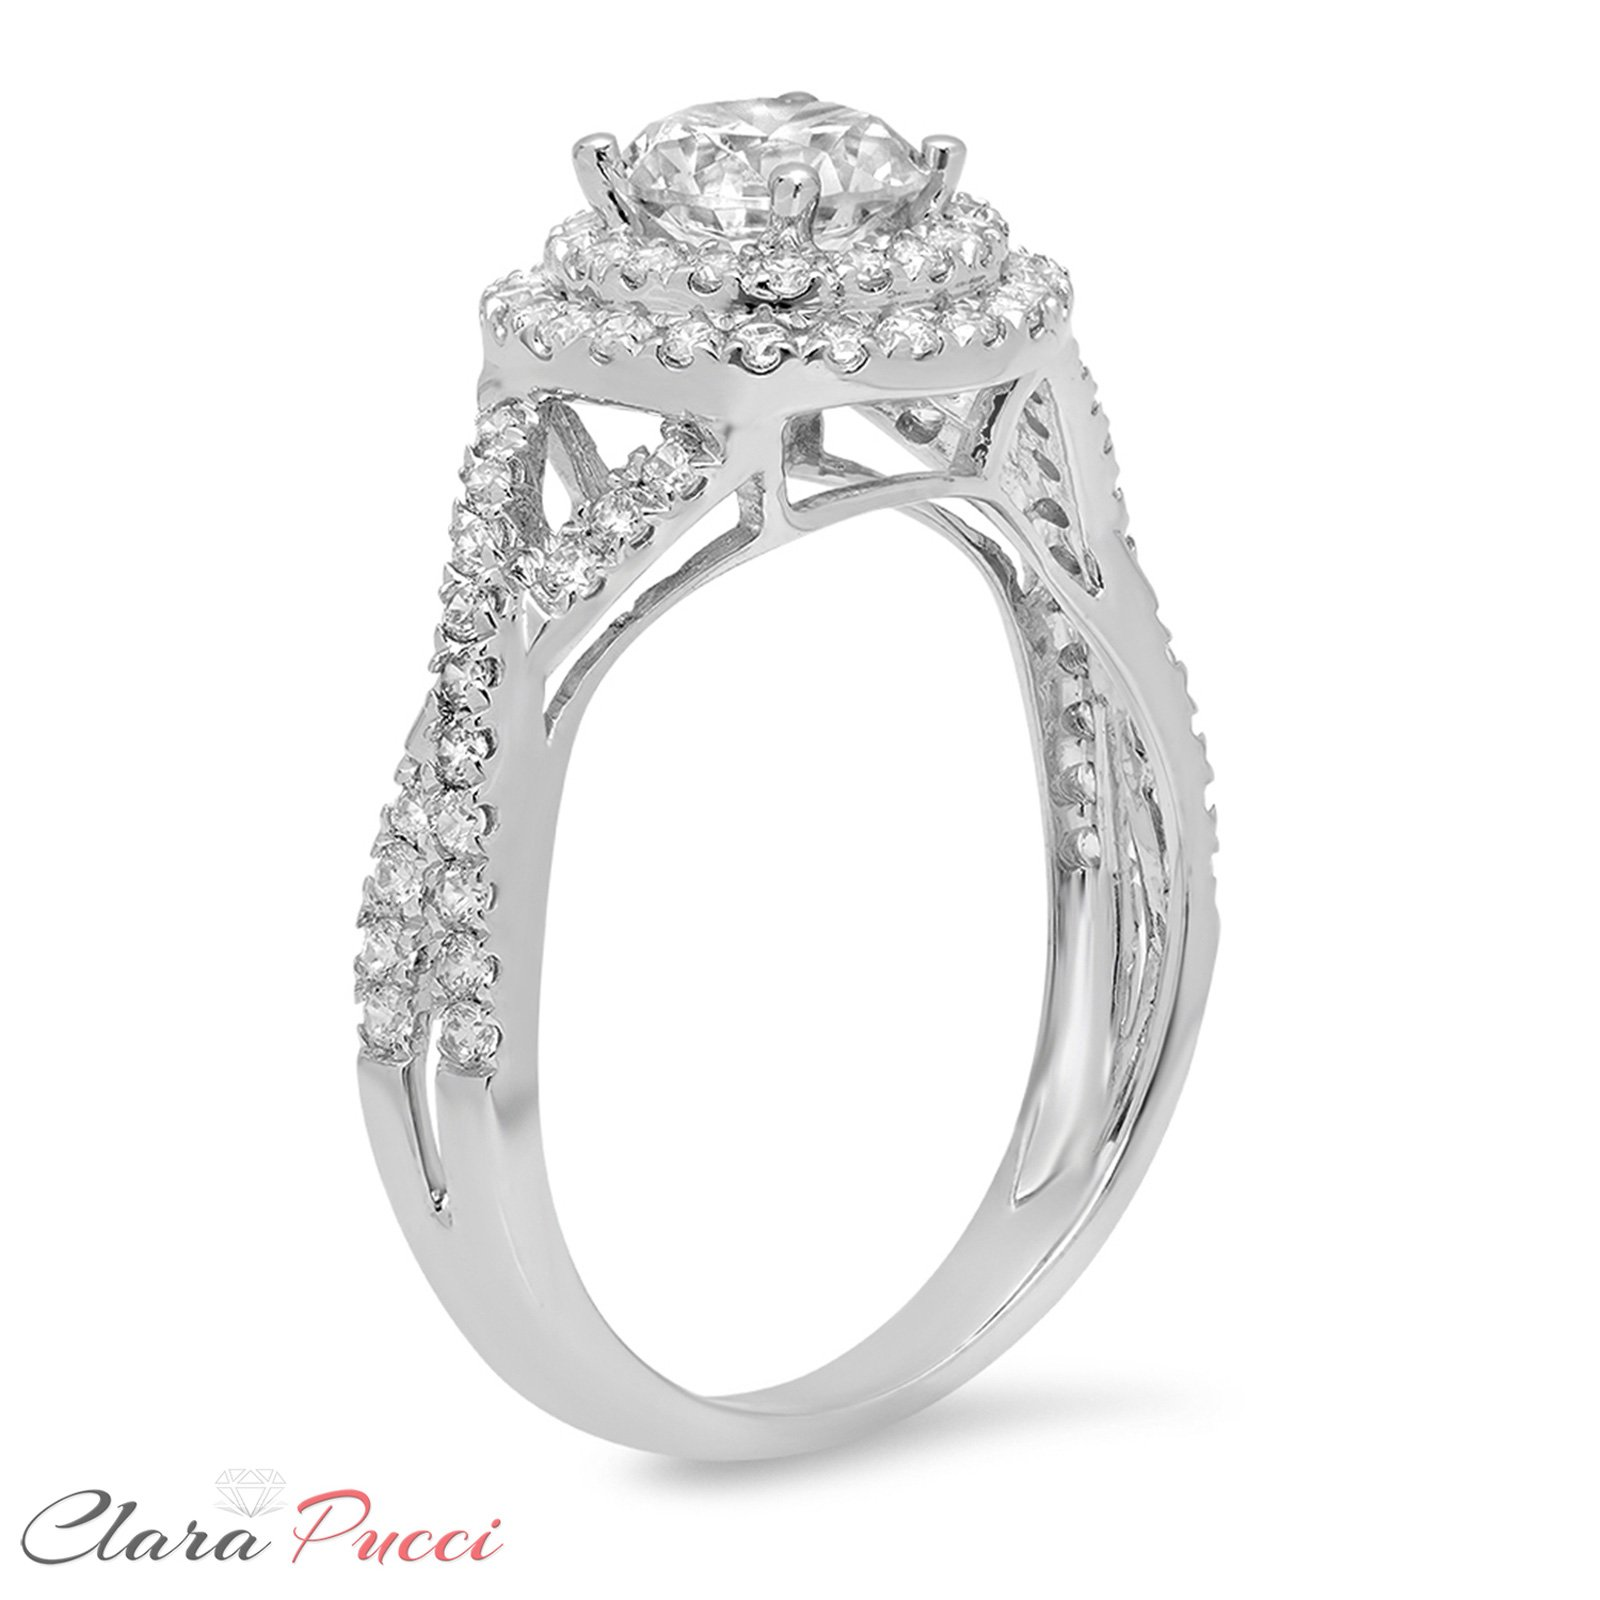 Clara Pucci 1.3 CT Round Cut Pave Halo Promide Bridal Engagement Ring Band 14k White Gold, Size 7 by Clara Pucci (Image #2)